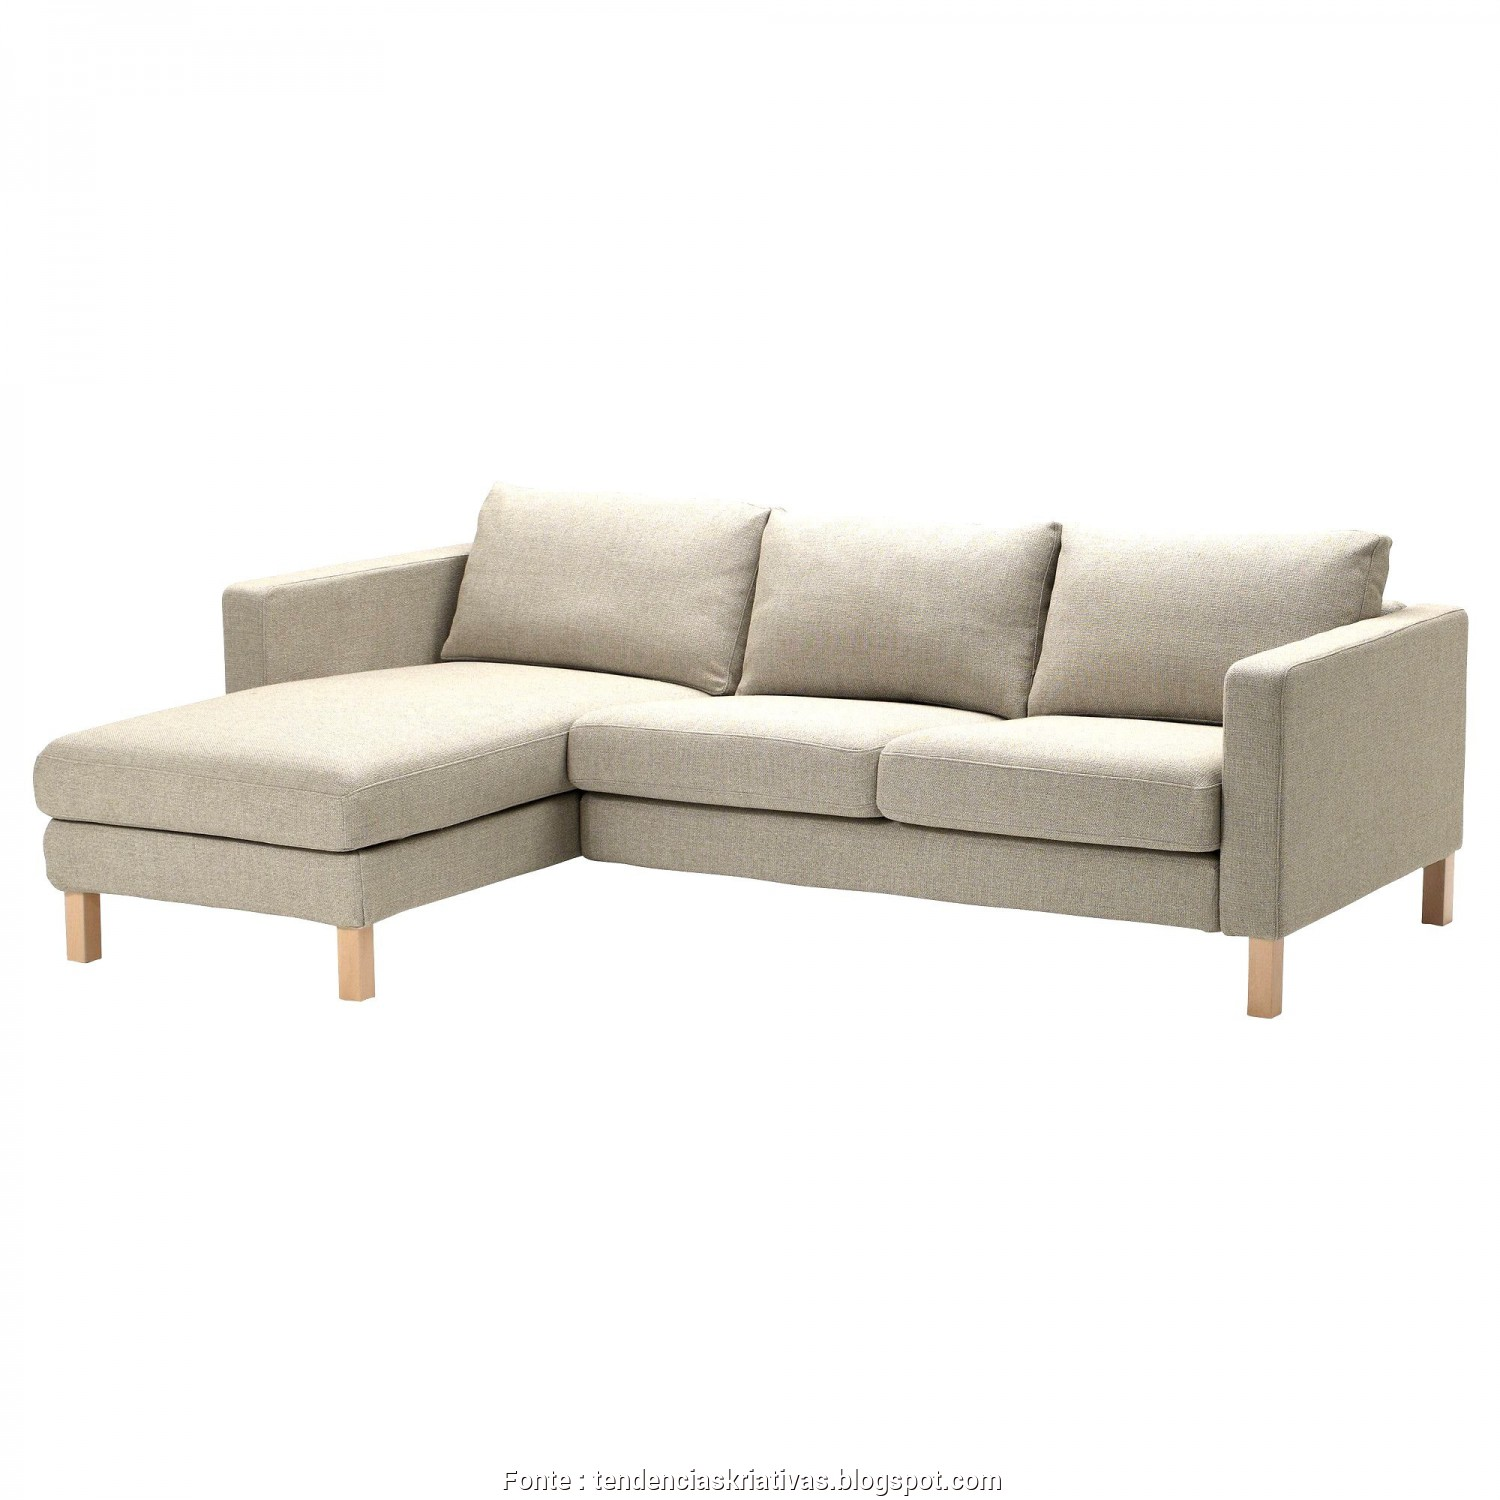 Arild Dormeuse Ikea, Originale Ikea Sofa, Parts Unique 25, Ikea Chaise Lounge Chair Uk Design